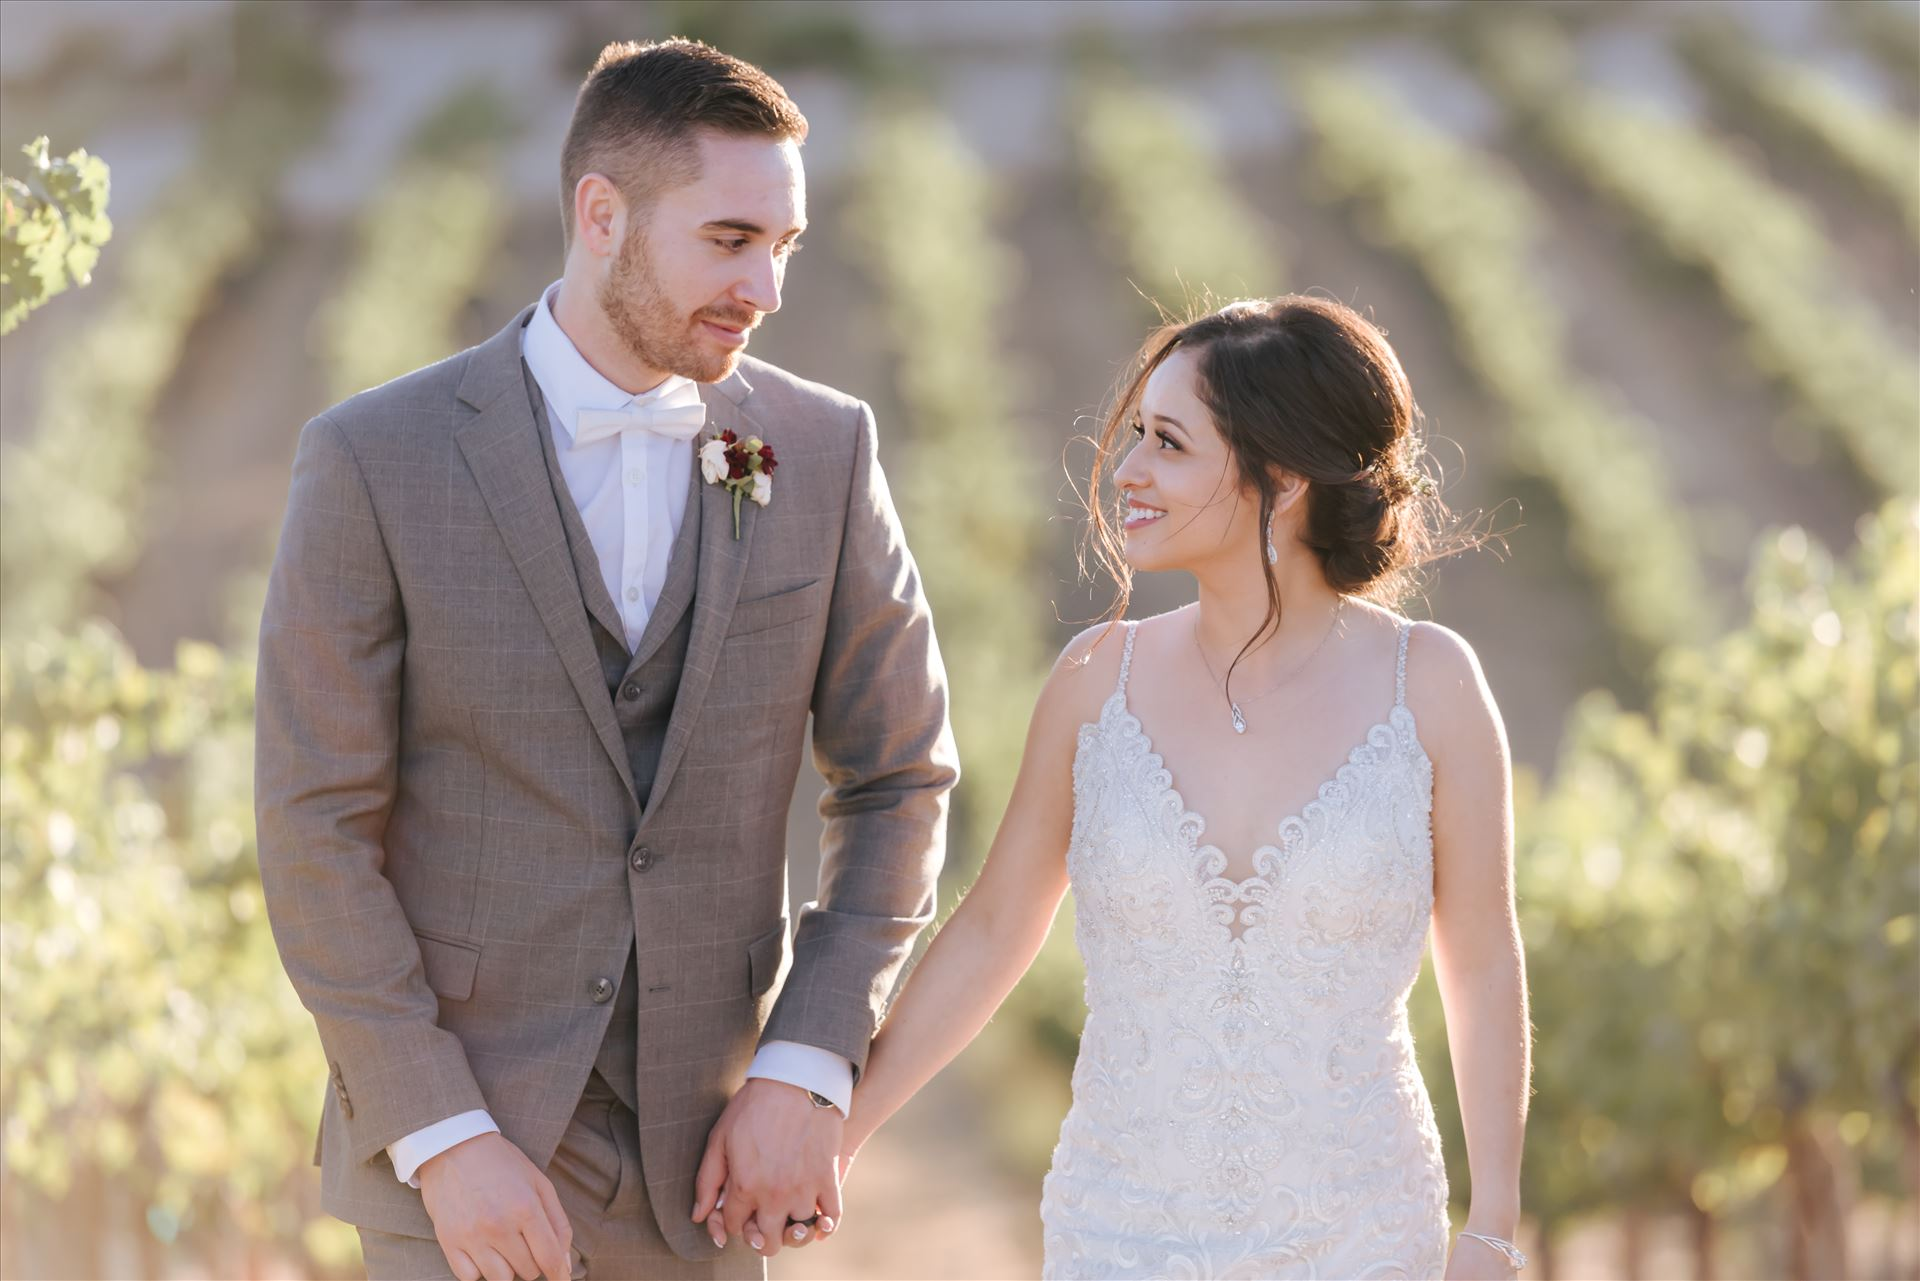 FW-6933.JPG - Tooth and Nail Winery elegant and formal wedding in Paso Robles California wine country by Mirror's Edge Photography, San Luis Obispo County Wedding Photographer. Bride and Groom walking through the vineyards in Paso Robles California wine country wedding by Sarah Williams